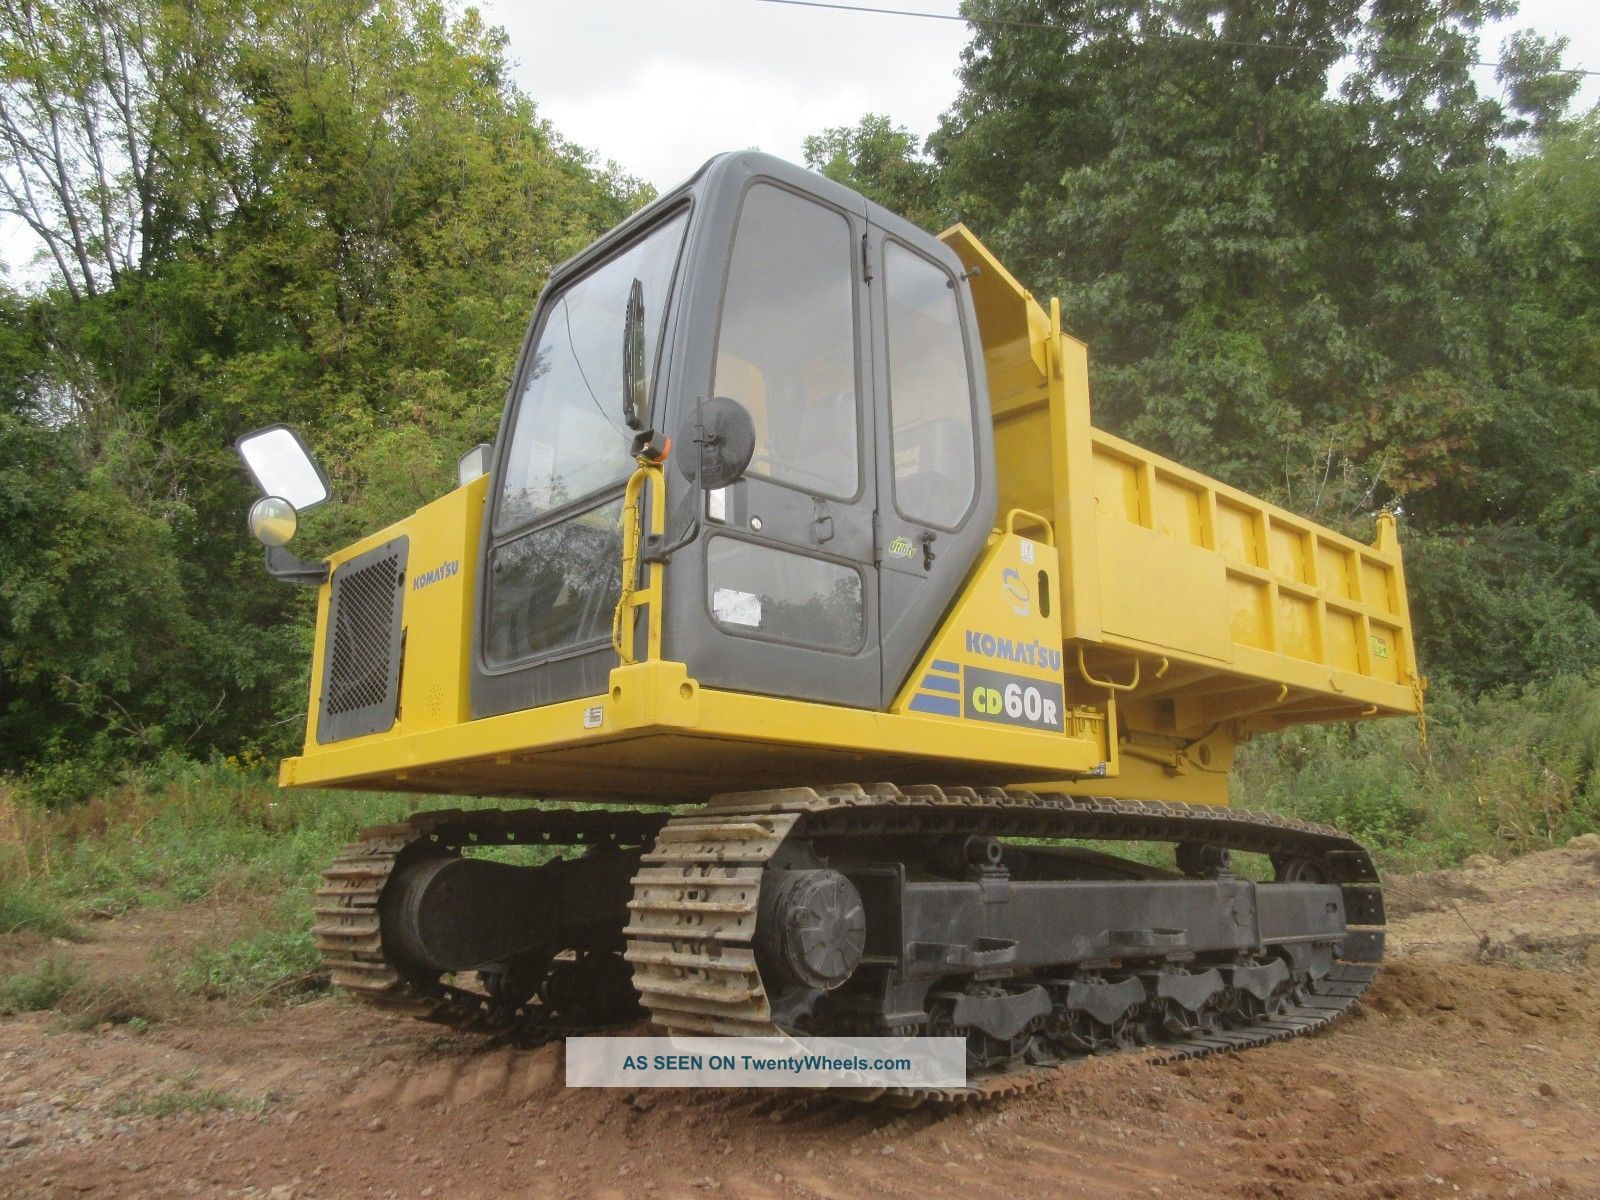 Komatsu Cd60r Track Dump Truck13200 Lb Capacity,  Steel Tracks,  360 Degree Rotate Other photo